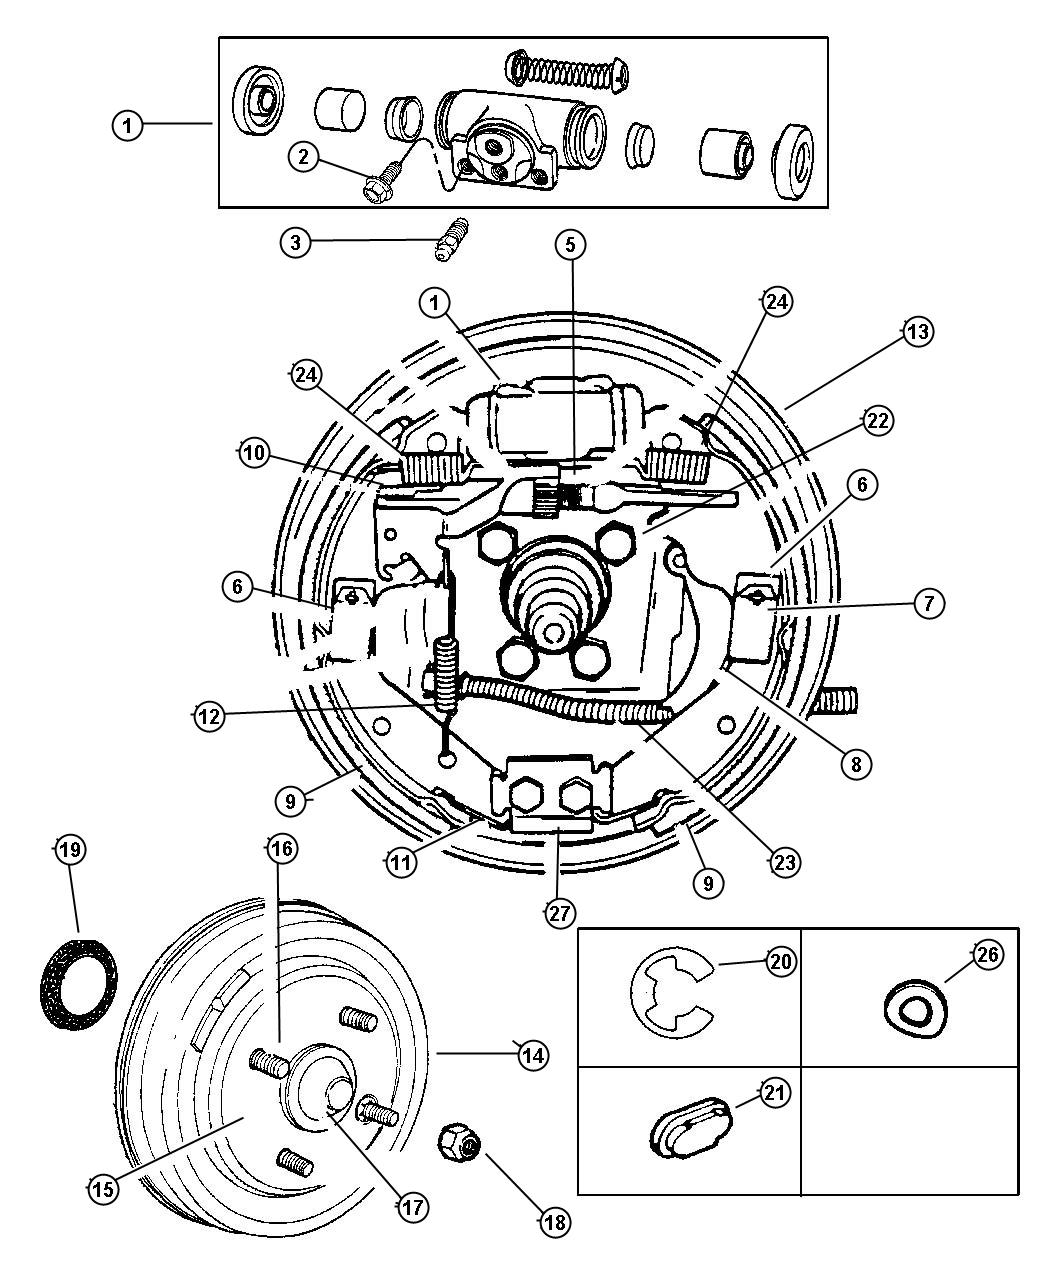 1996 Plymouth Neon Fuse Box Diagram. Plymouth. Auto Wiring